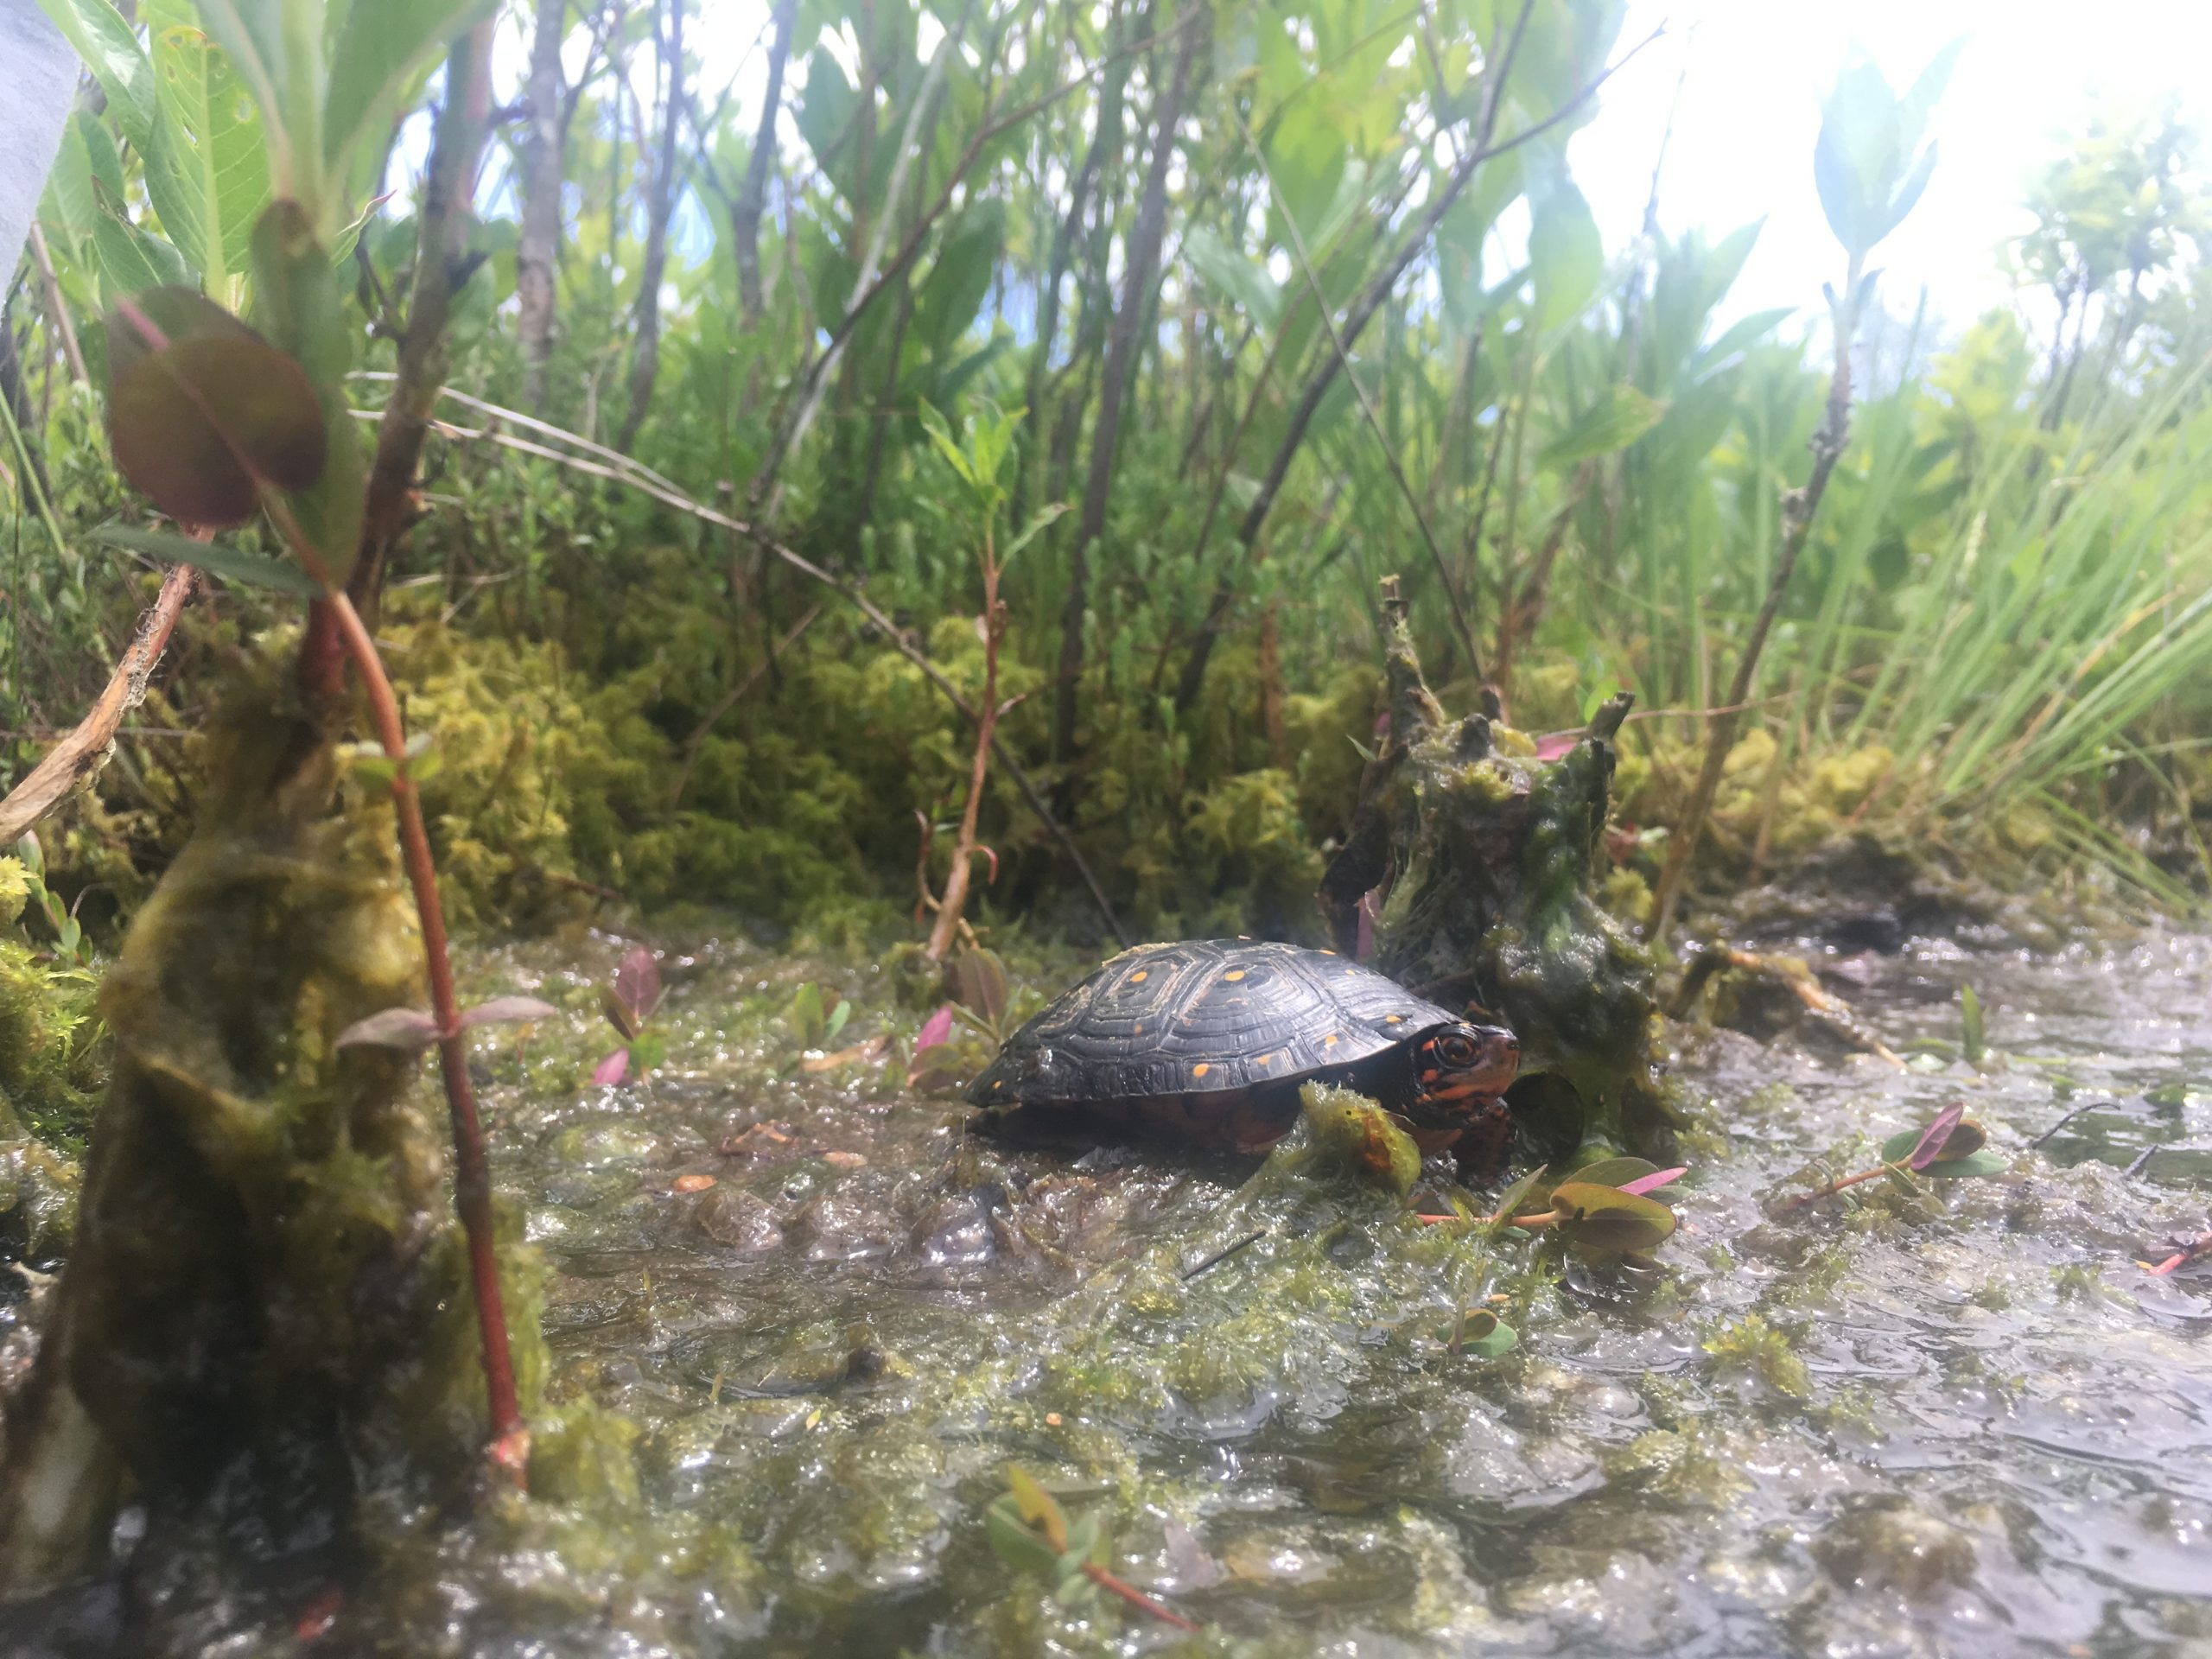 Summer Lecture Series: Traveling Tales of the Elusive Spotted Turtle (In-Person Lecture) @ The Polly Hill Arboretum Far Barn